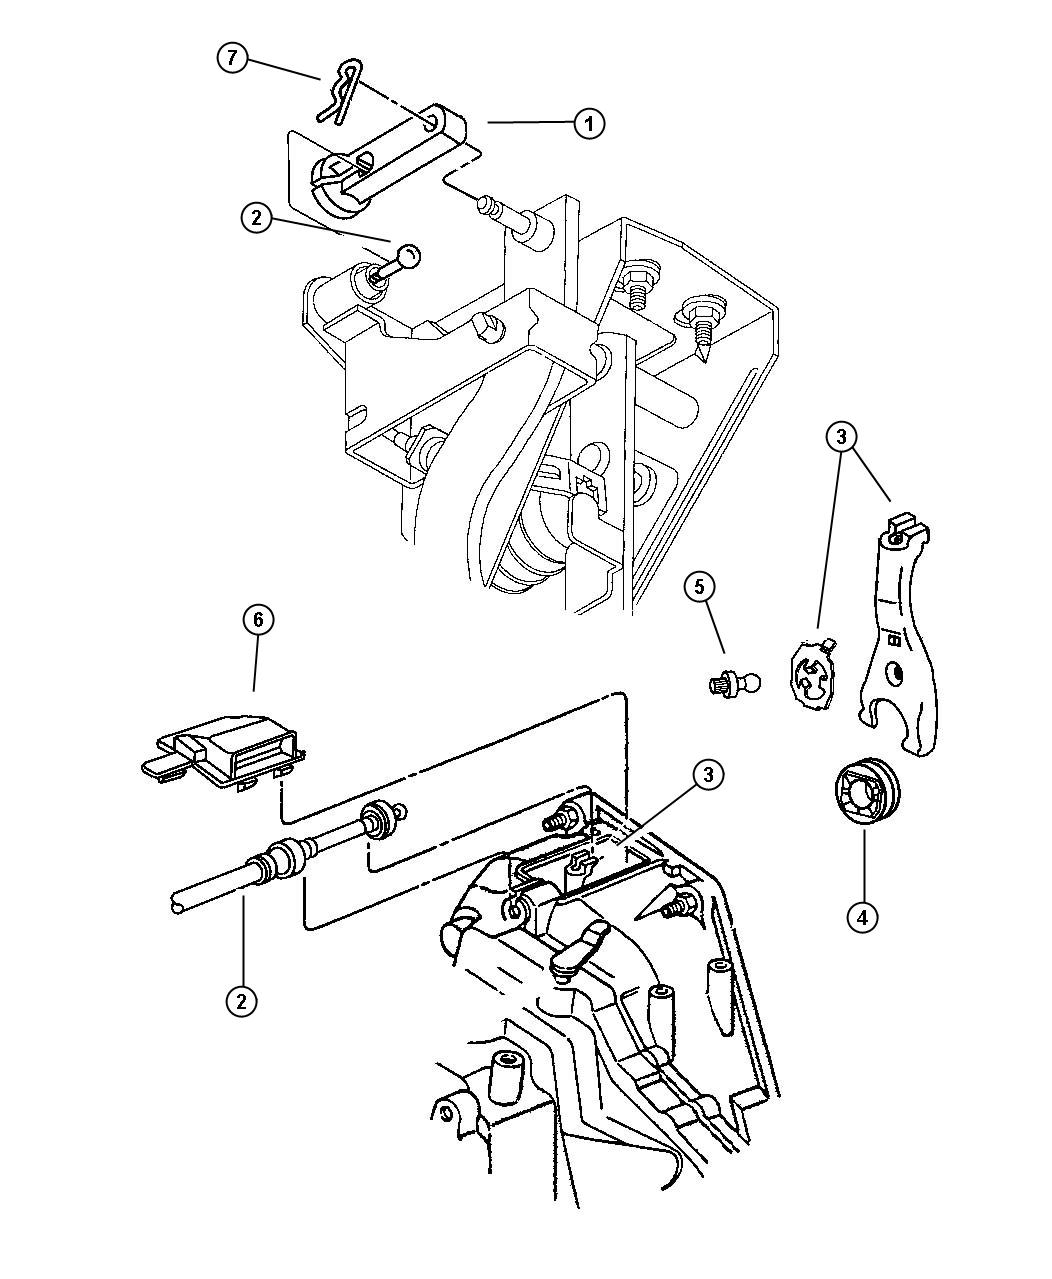 Service manual [Diagram For A 1996 Chrysler Cirrus